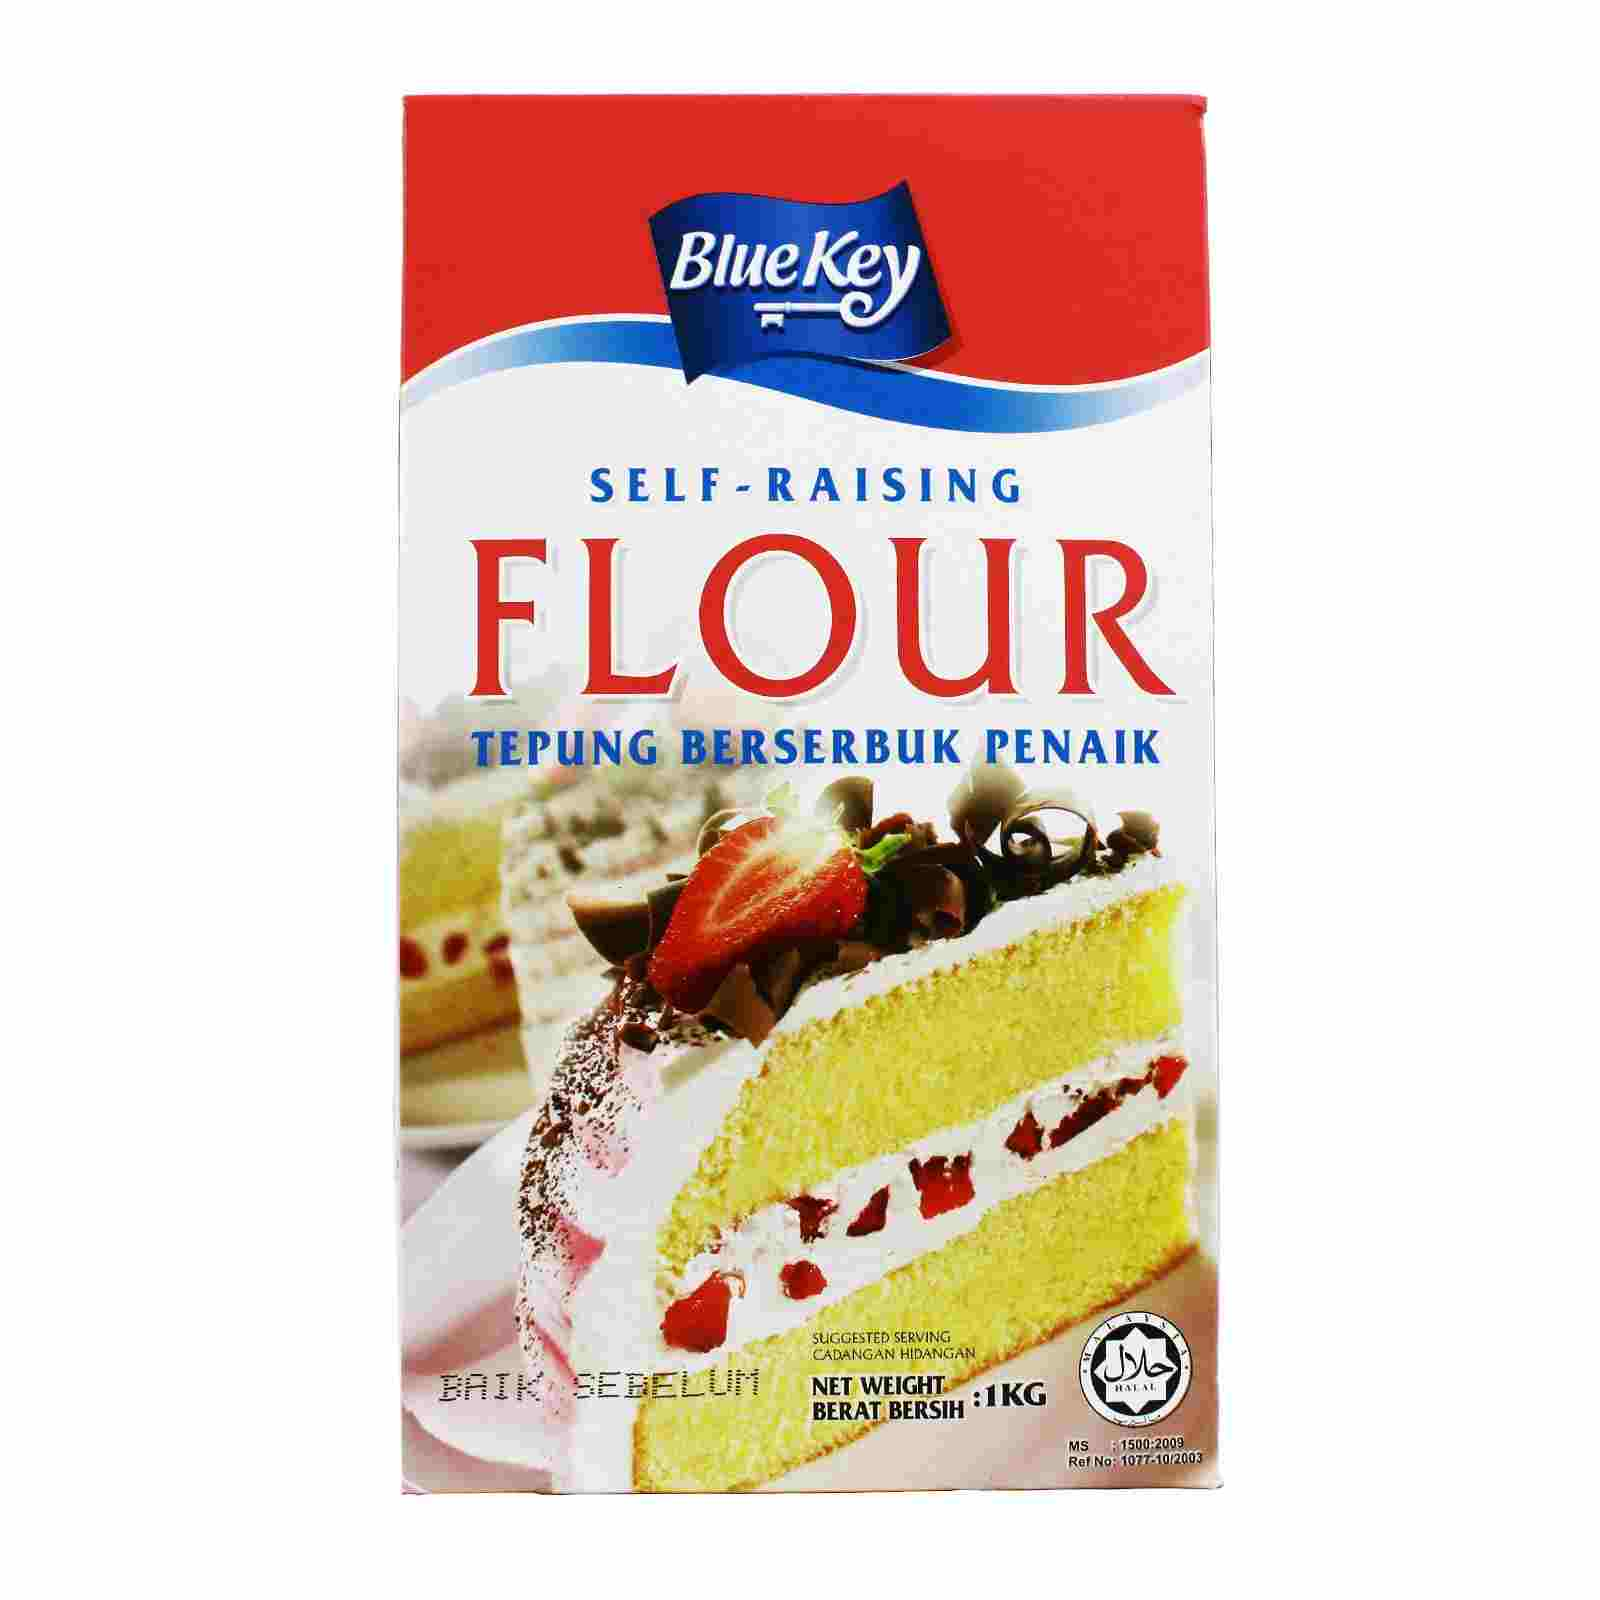 Image Bluekey self raising flour 自发粉 1000grams